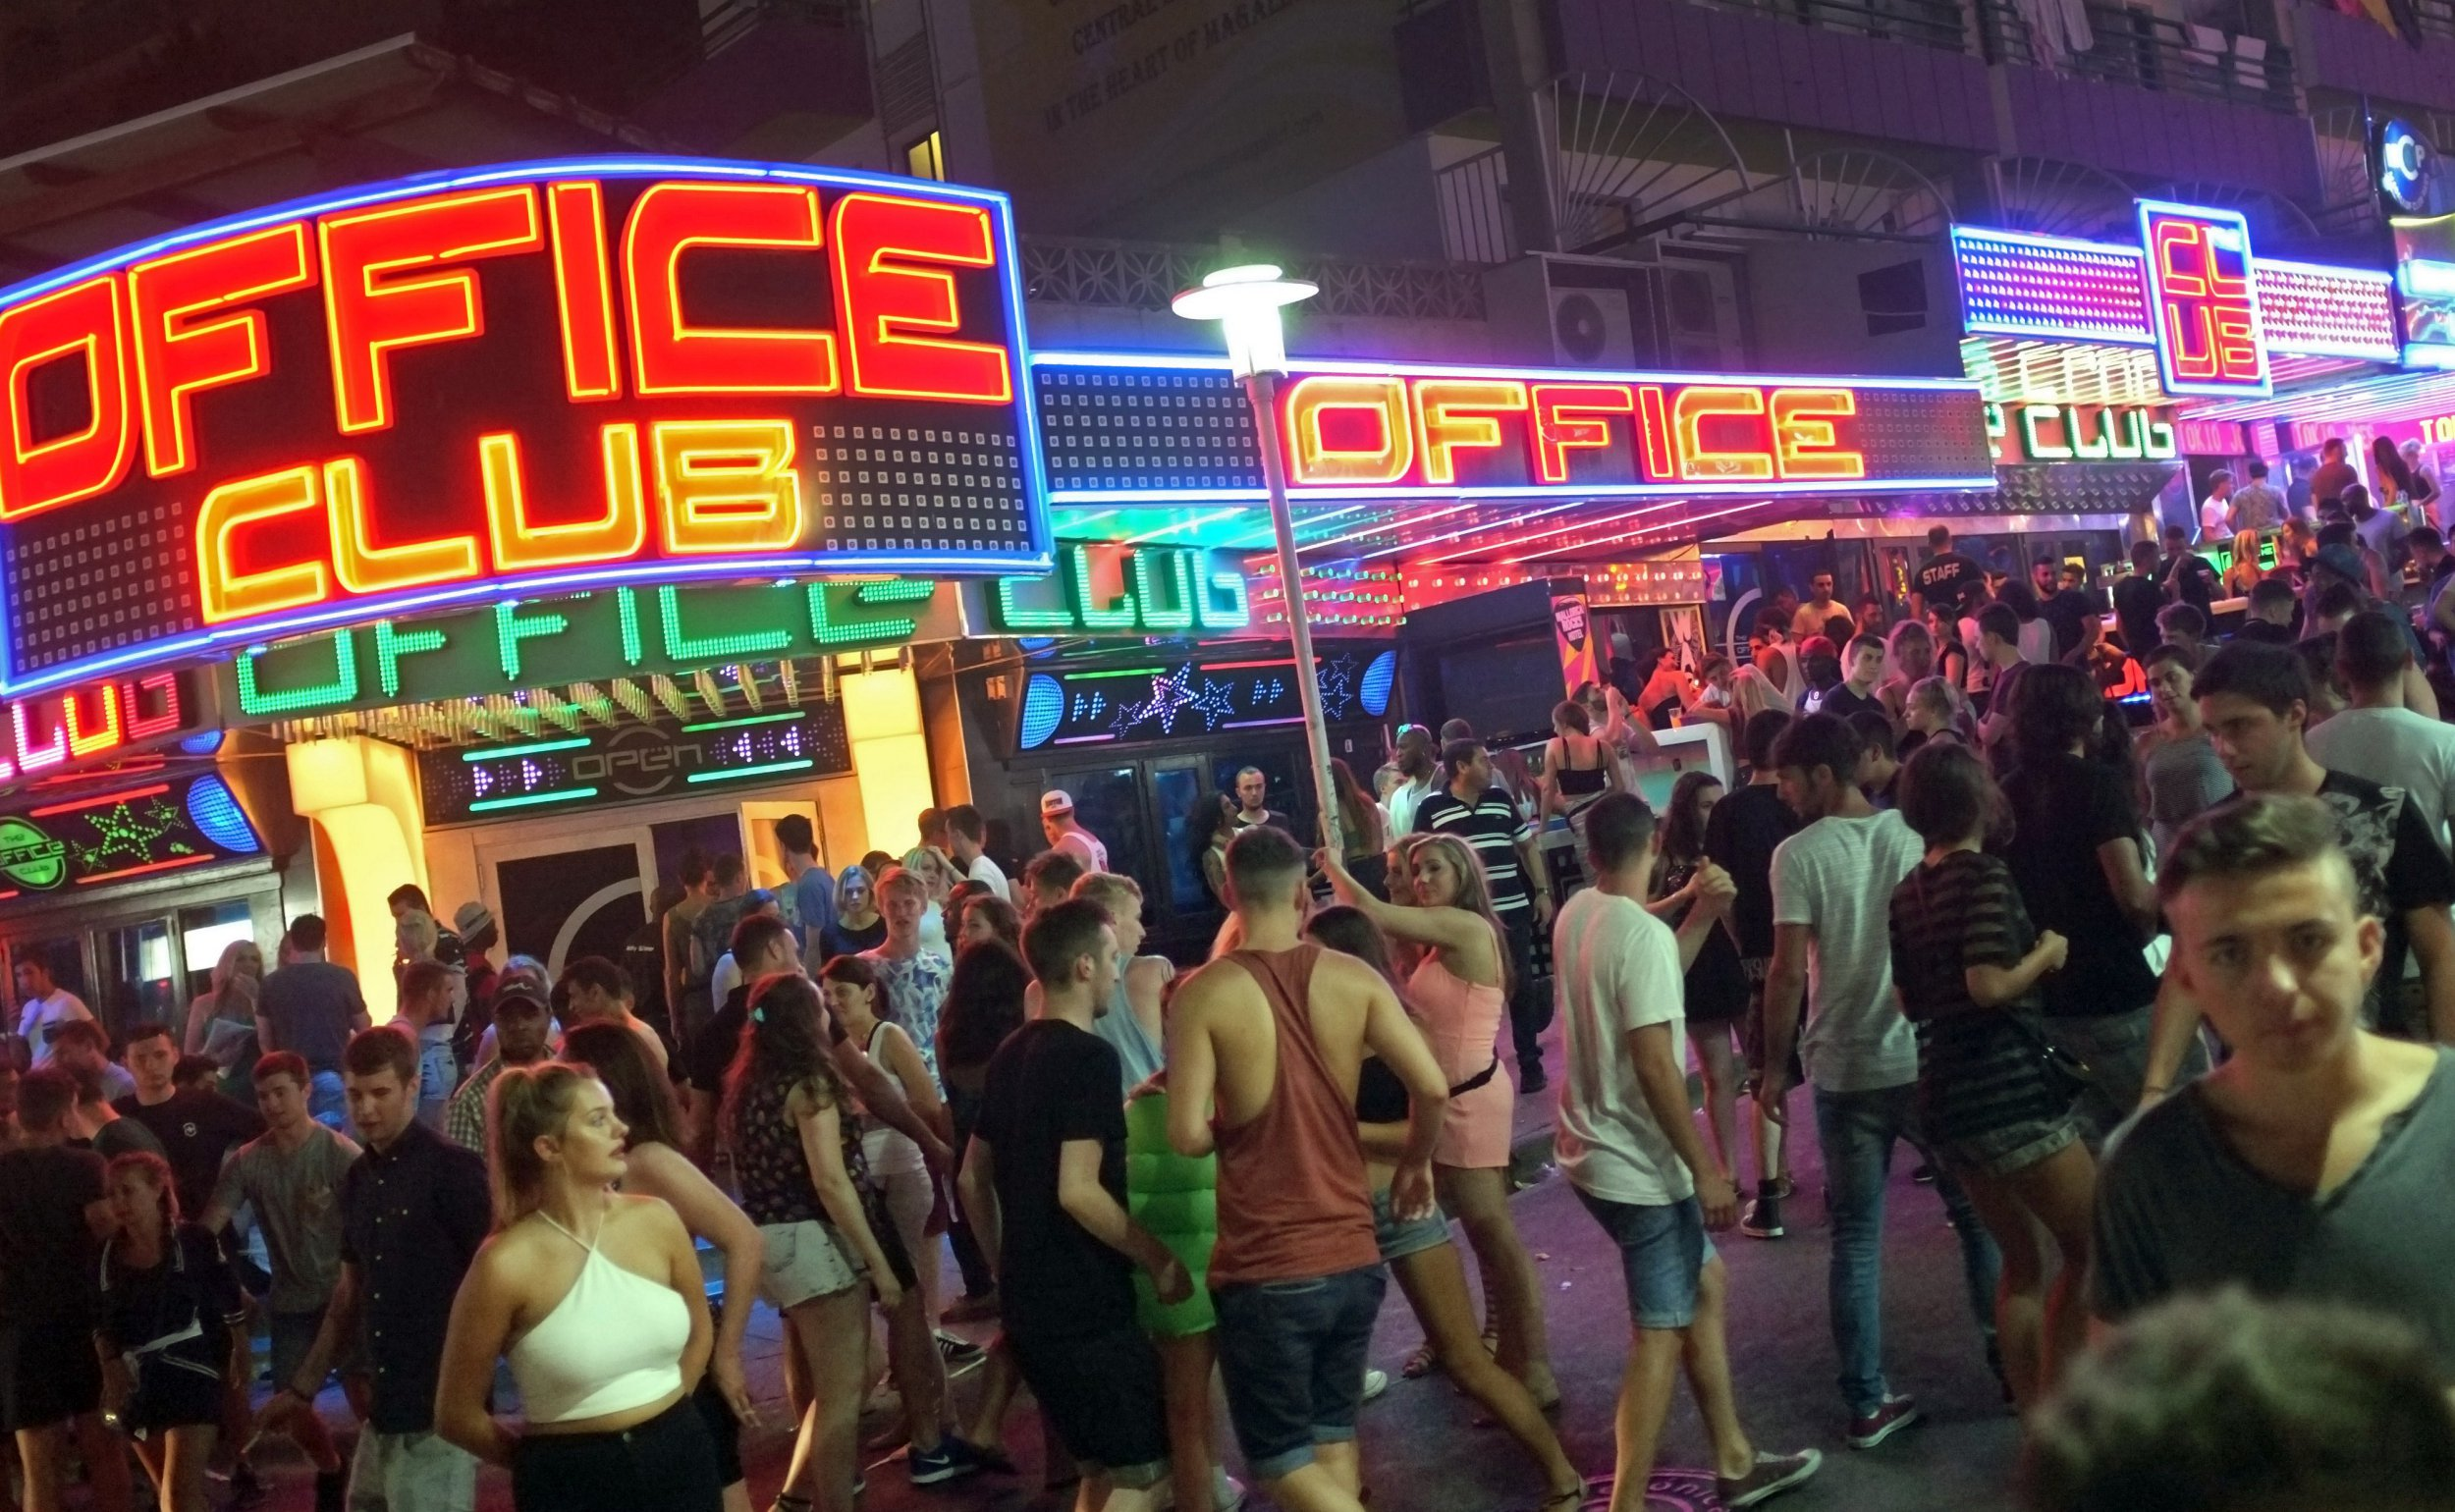 Over 100 people fined for having sex and being naked in Magaluf streets